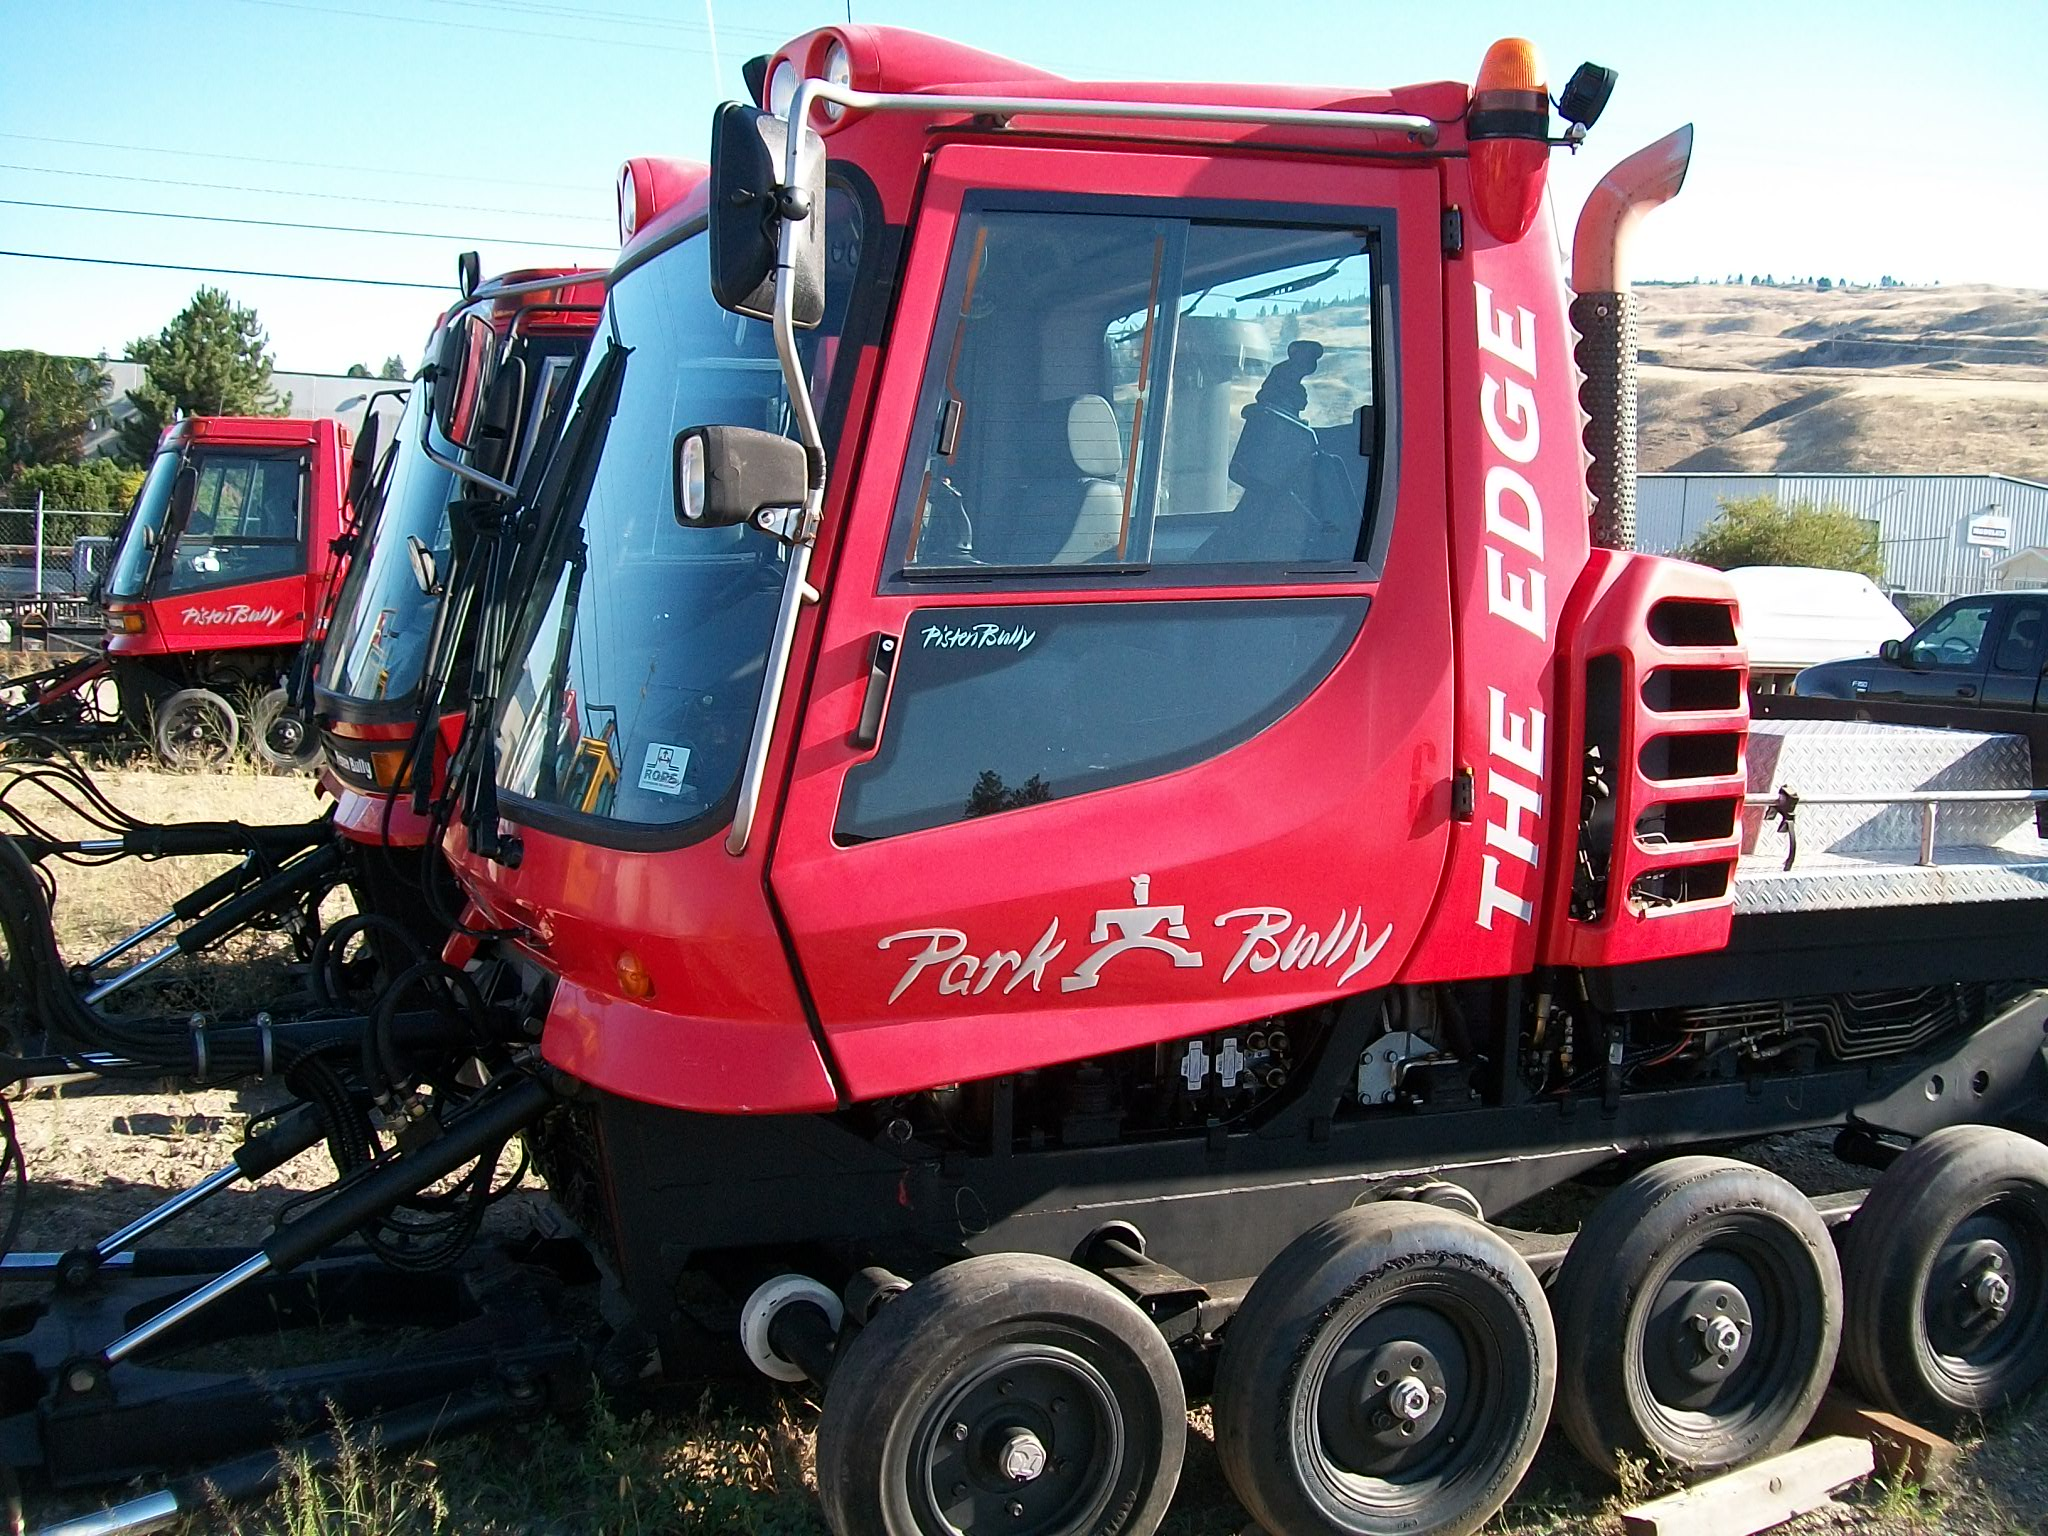 Pisten bully 100 for sale - Park Bully Edge